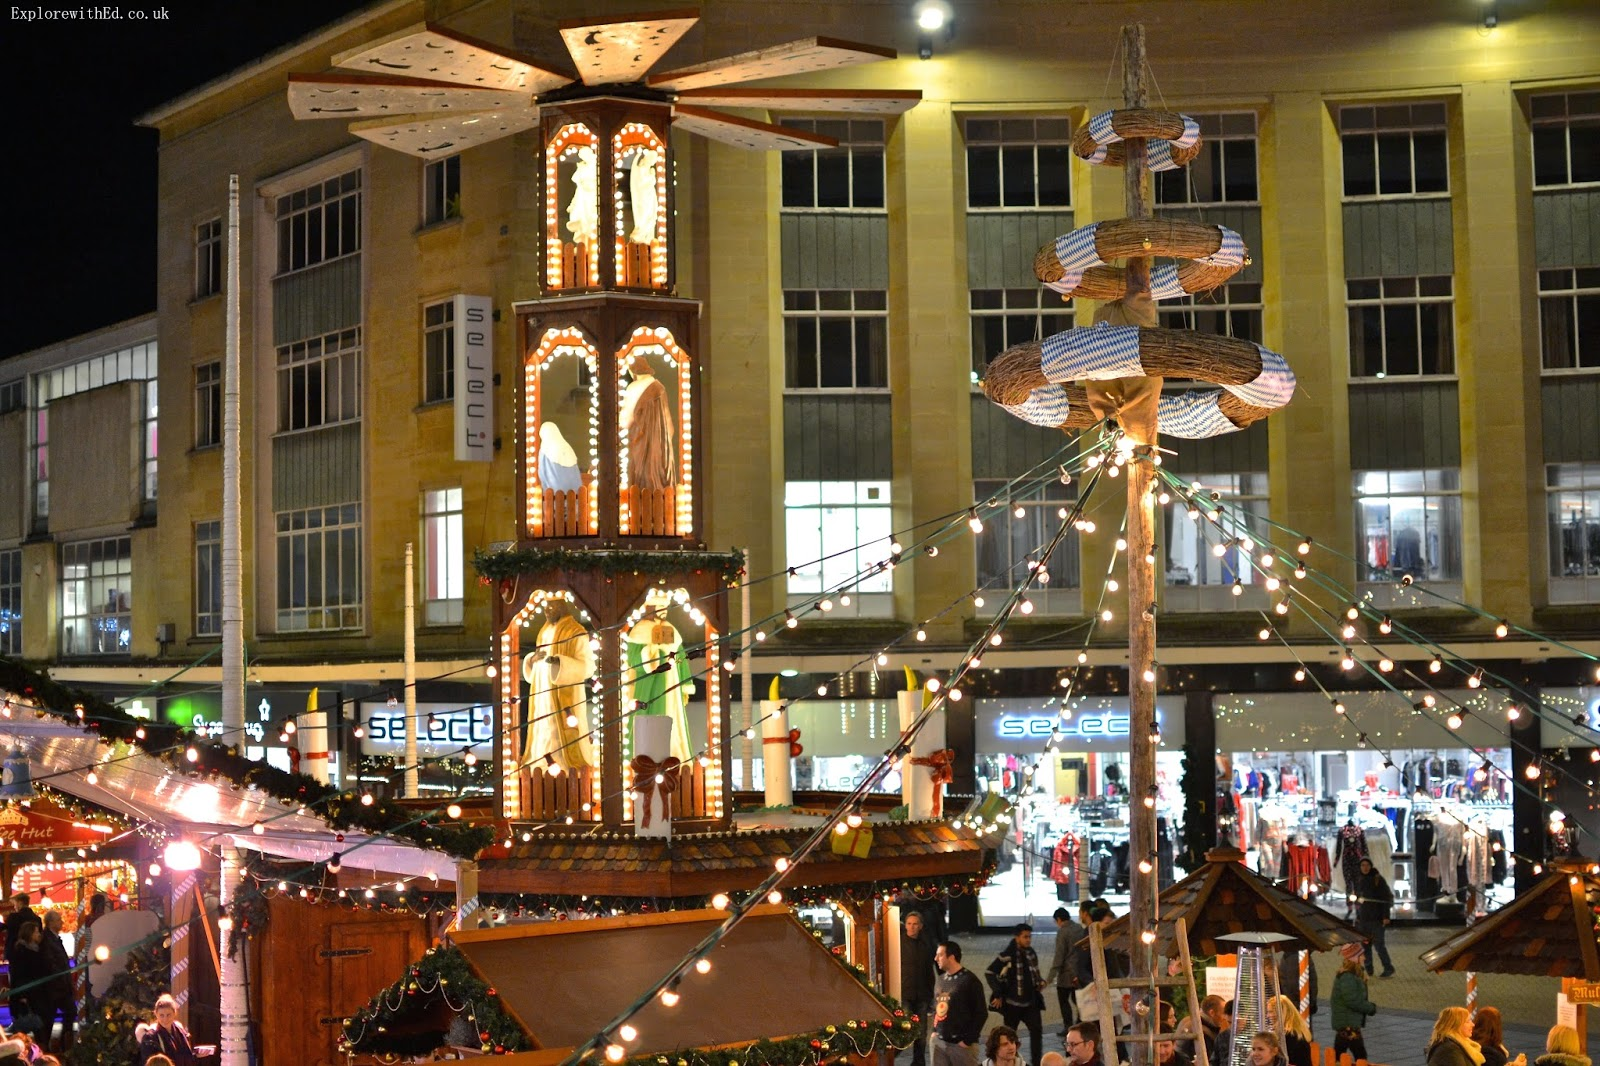 Christmas Stall in Bristol